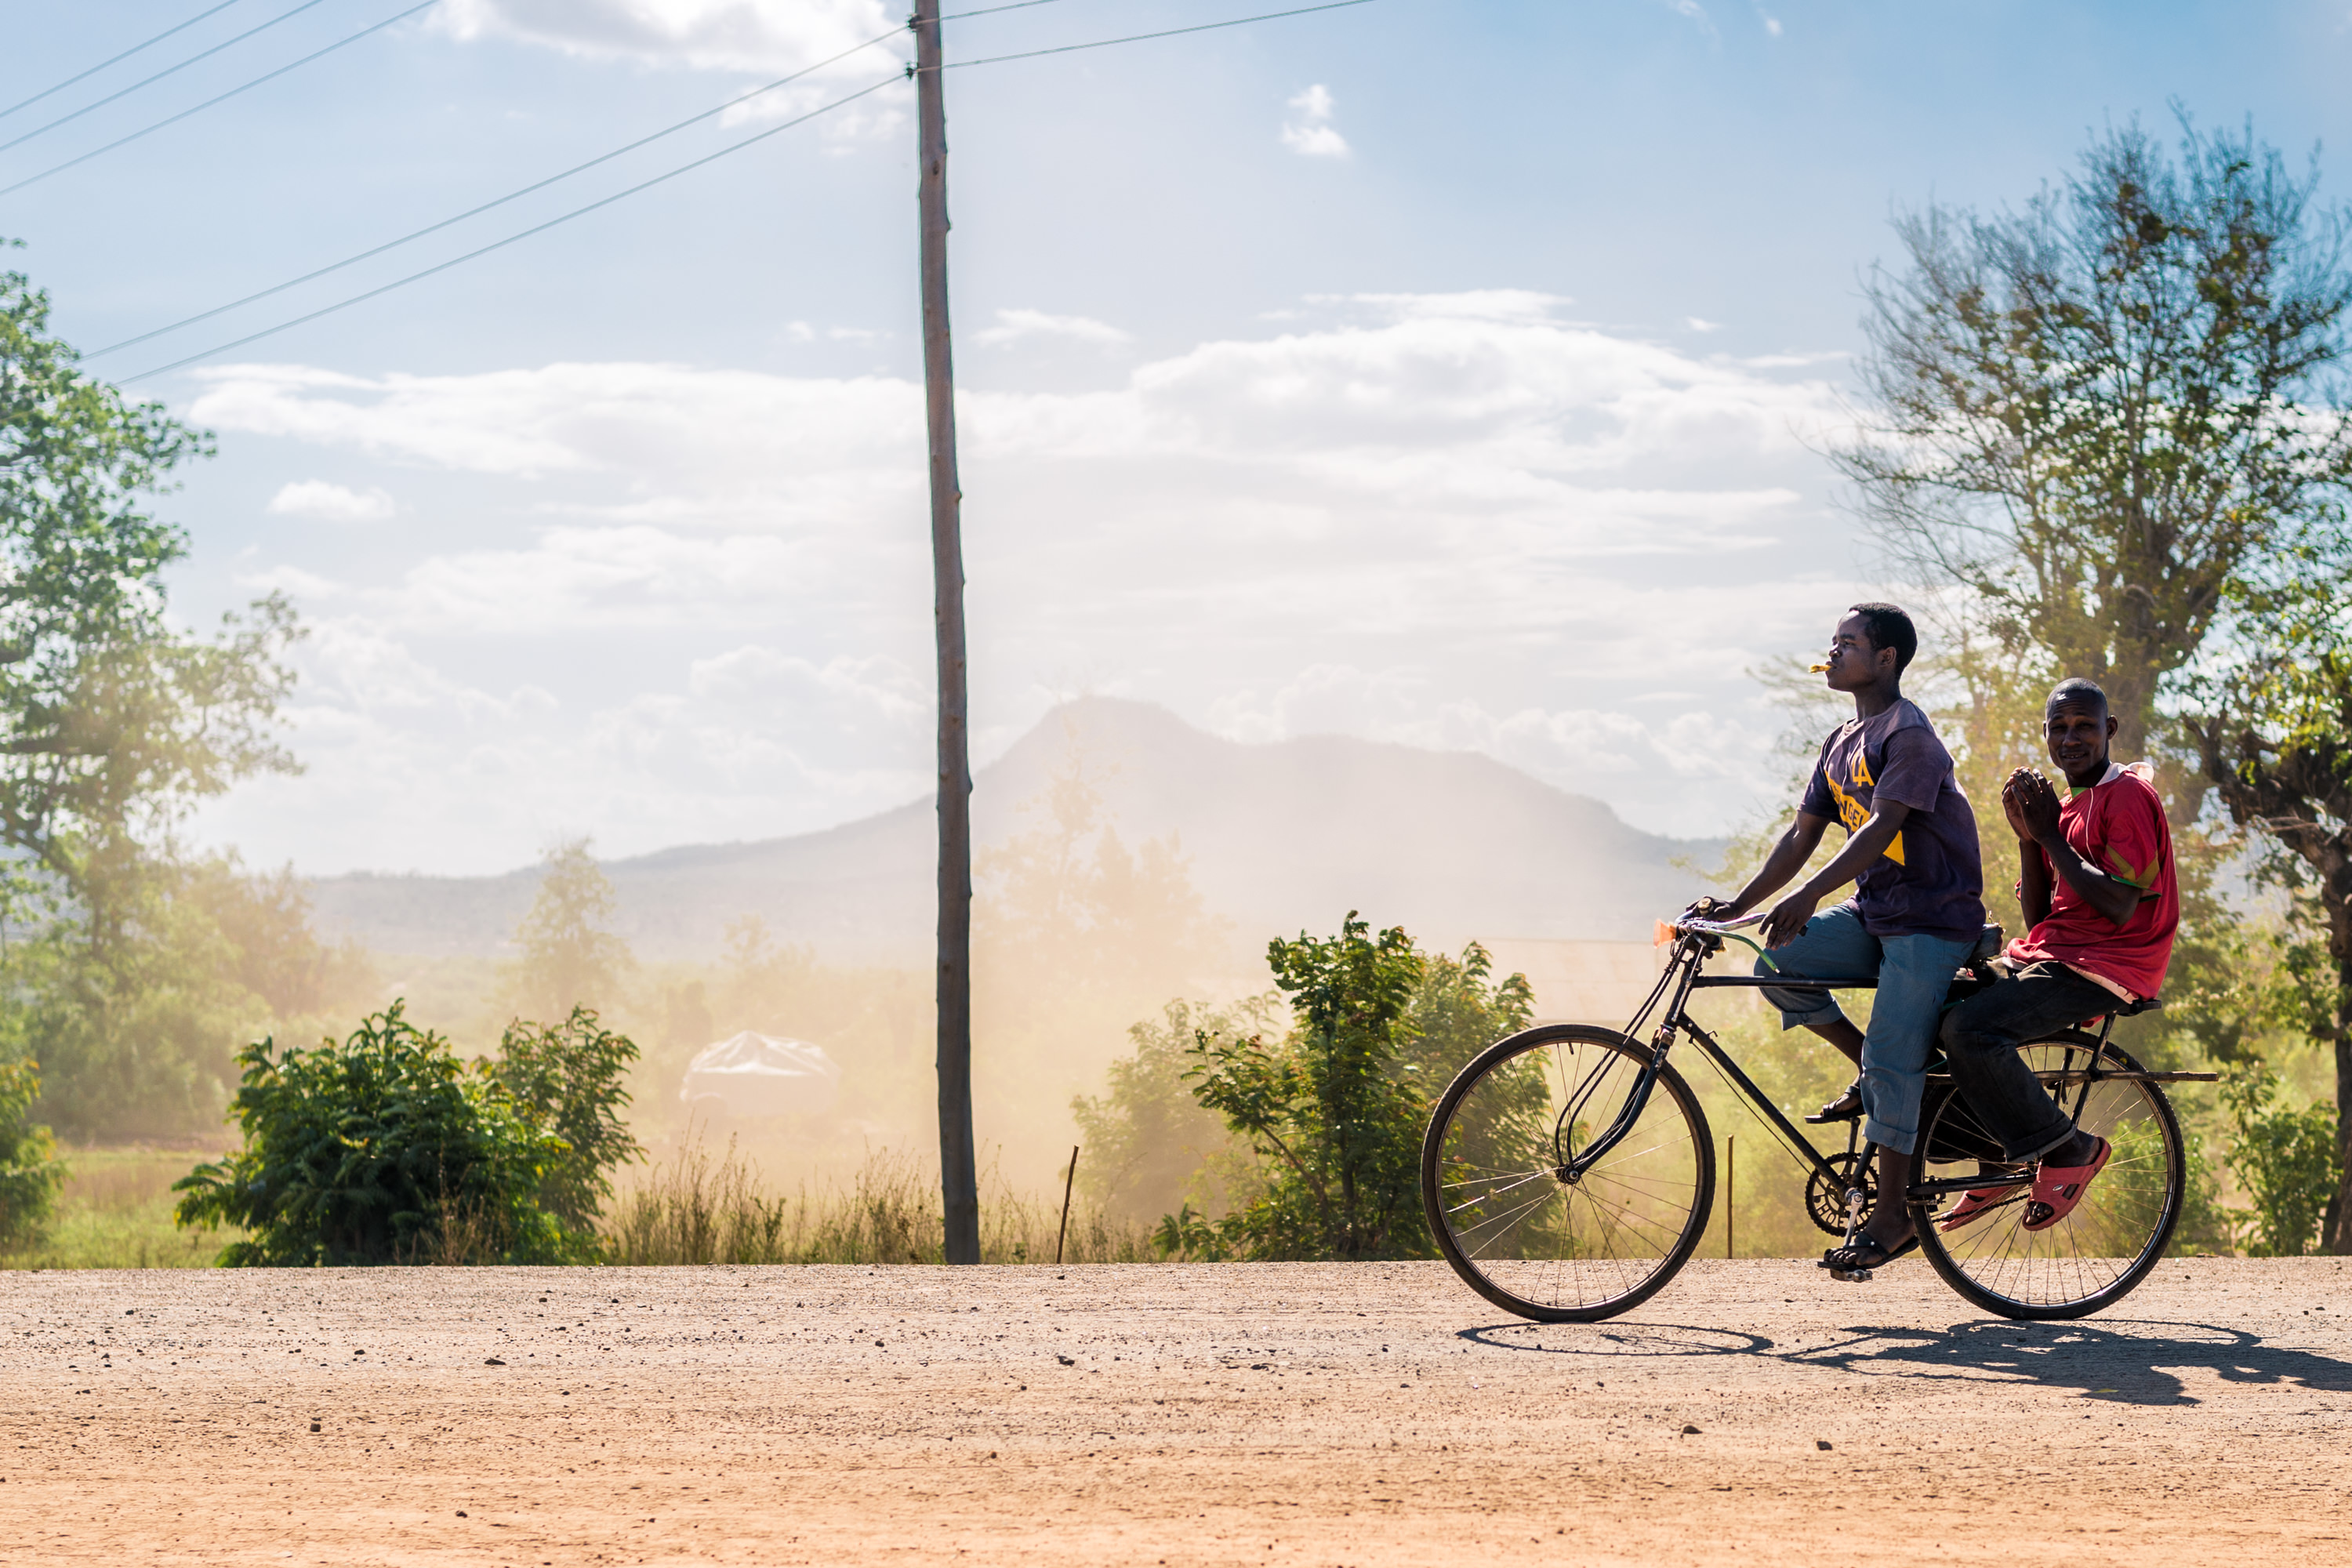 Two men ride tandem on a bicycle on a dirt road in Tanzania